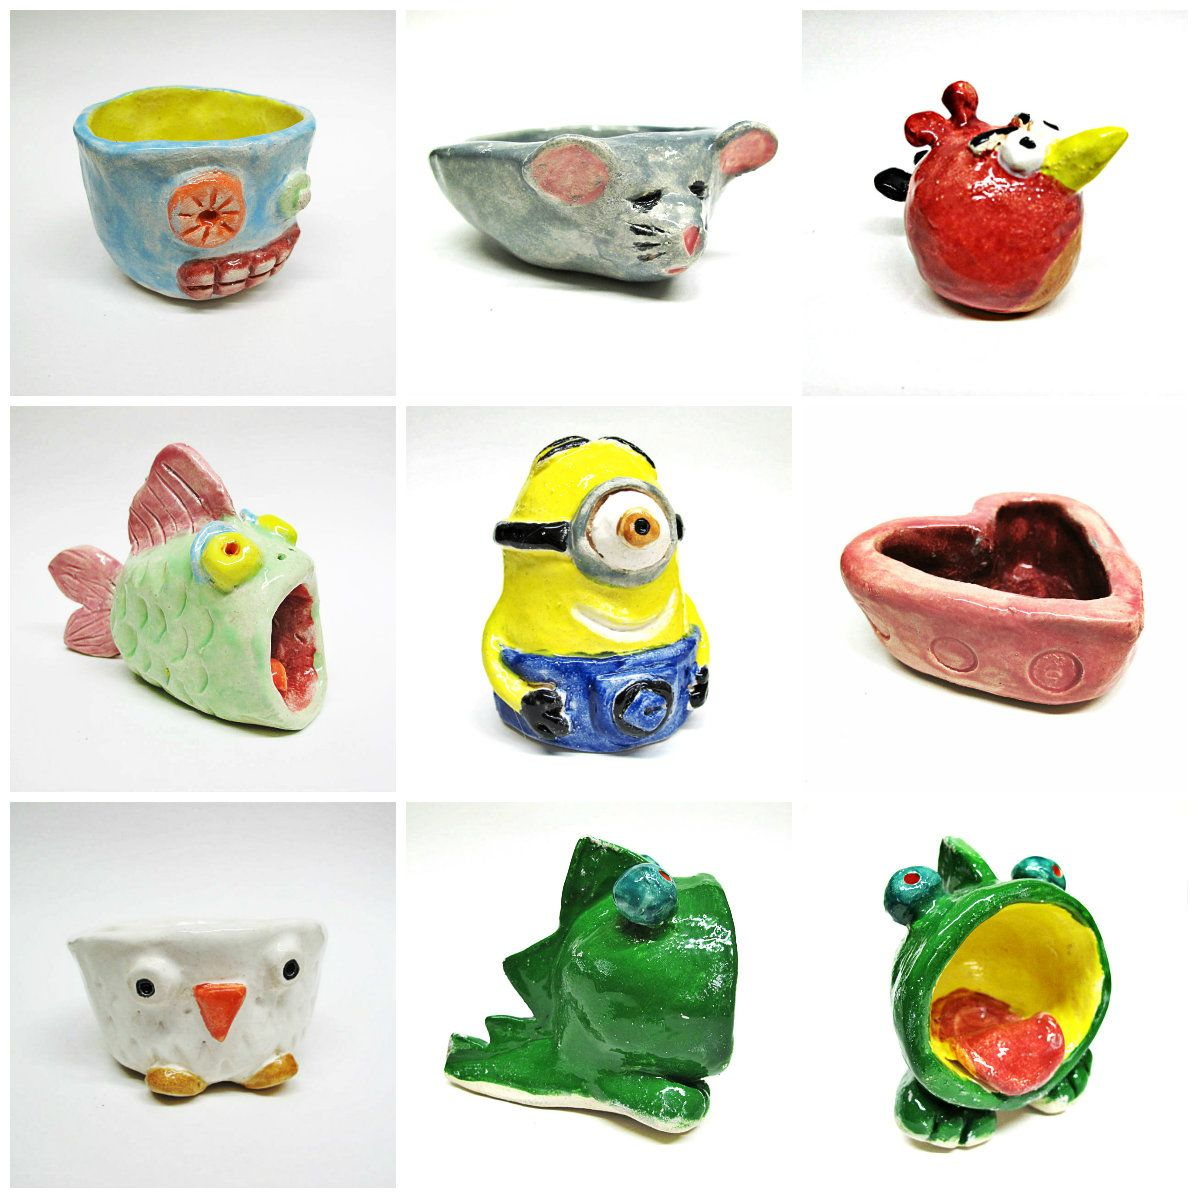 Free diy arts crafts tutorial clay pinch pot ideas by for Clay making ideas